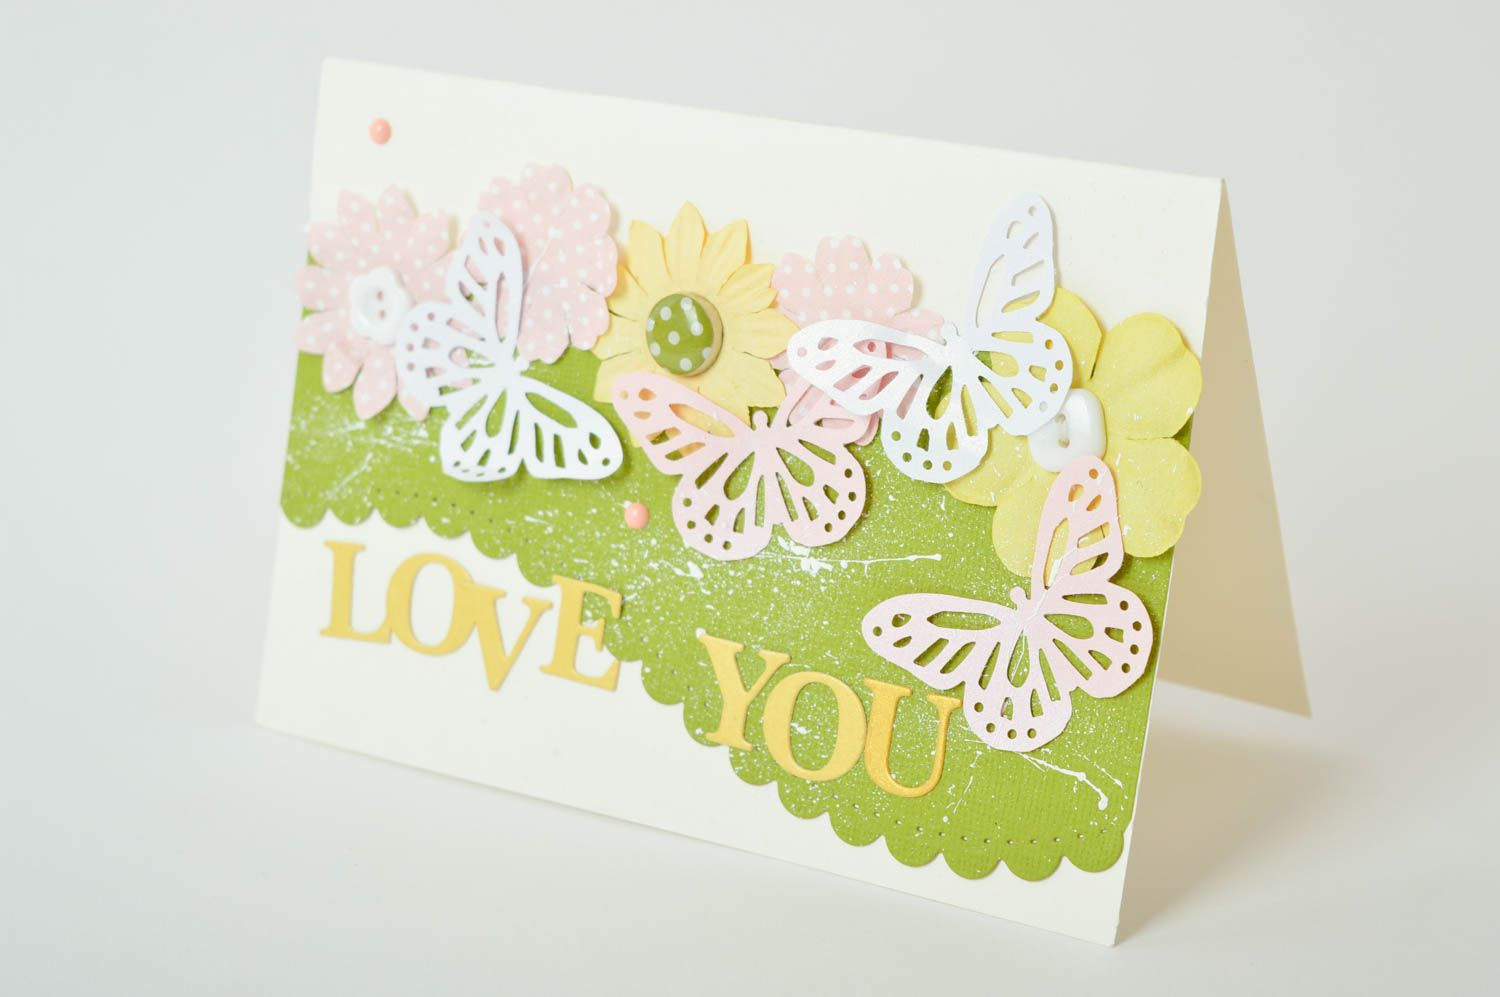 Homemade postcard greeting card love you card souvenir ideas cool gifts photo 2